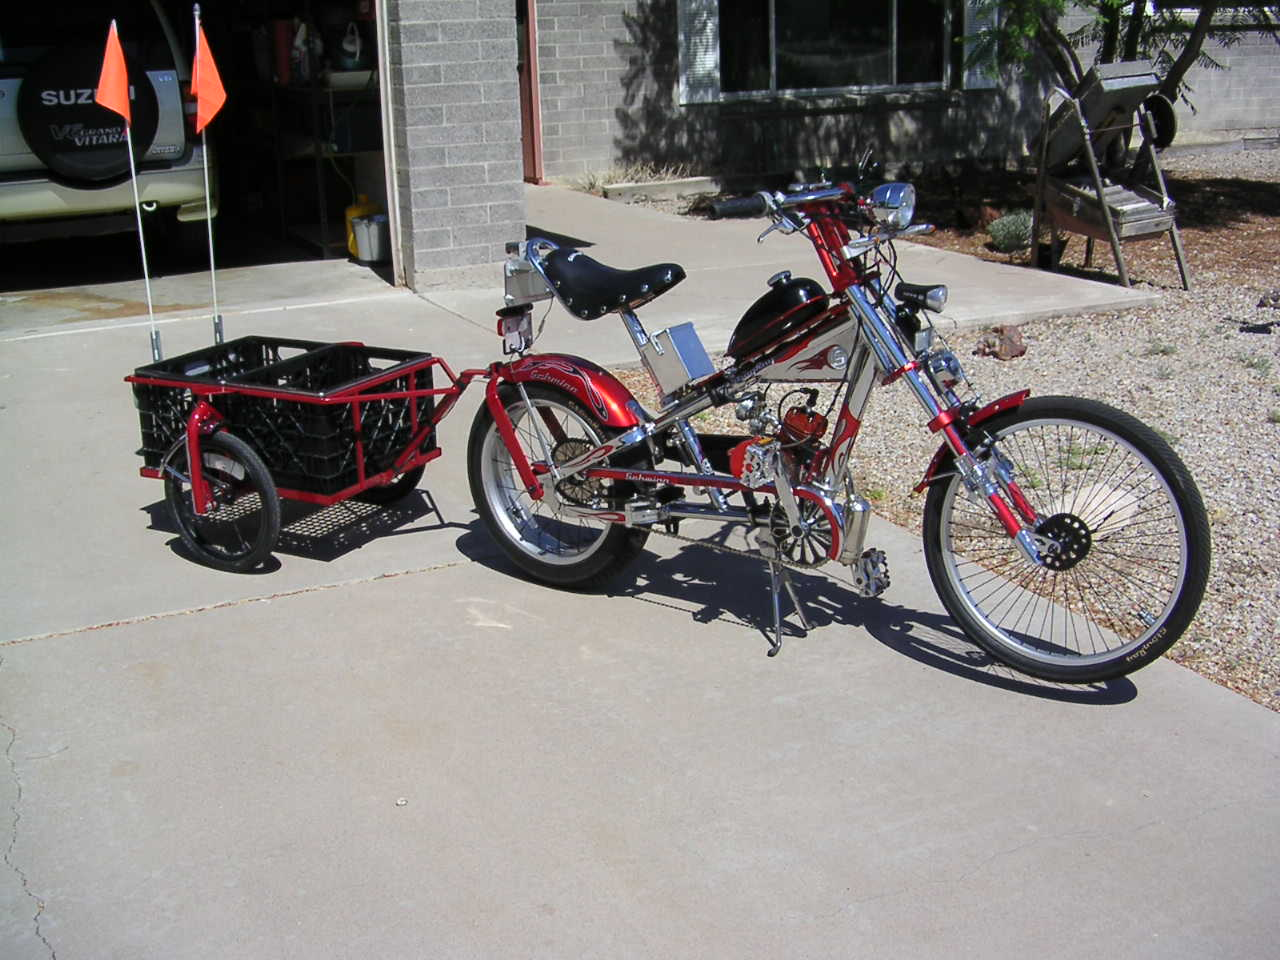 occ-schwinn-chopper-standard-and-xl-models-006.jpg